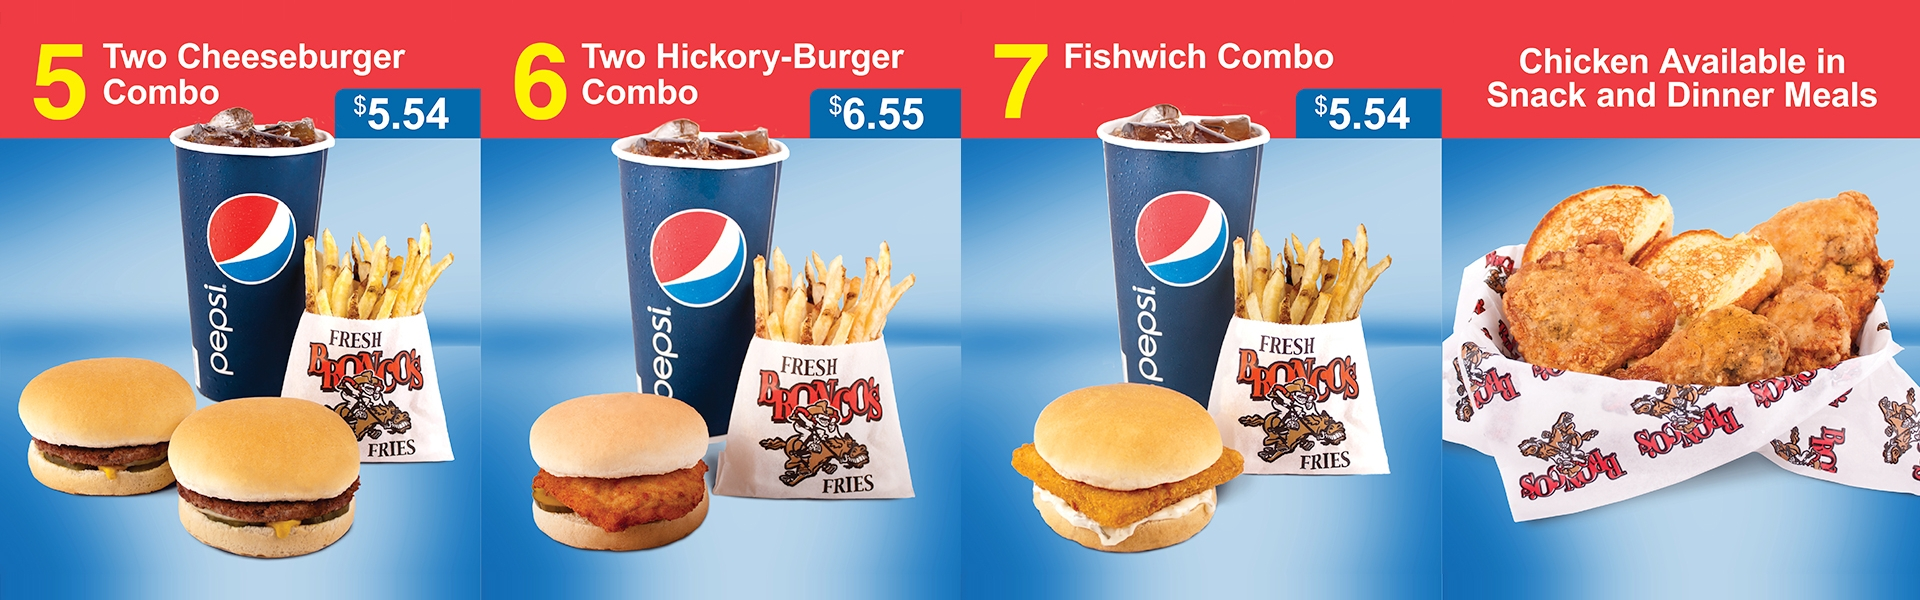 PepsiCo, Inc. and Bronco Burger Food Styling